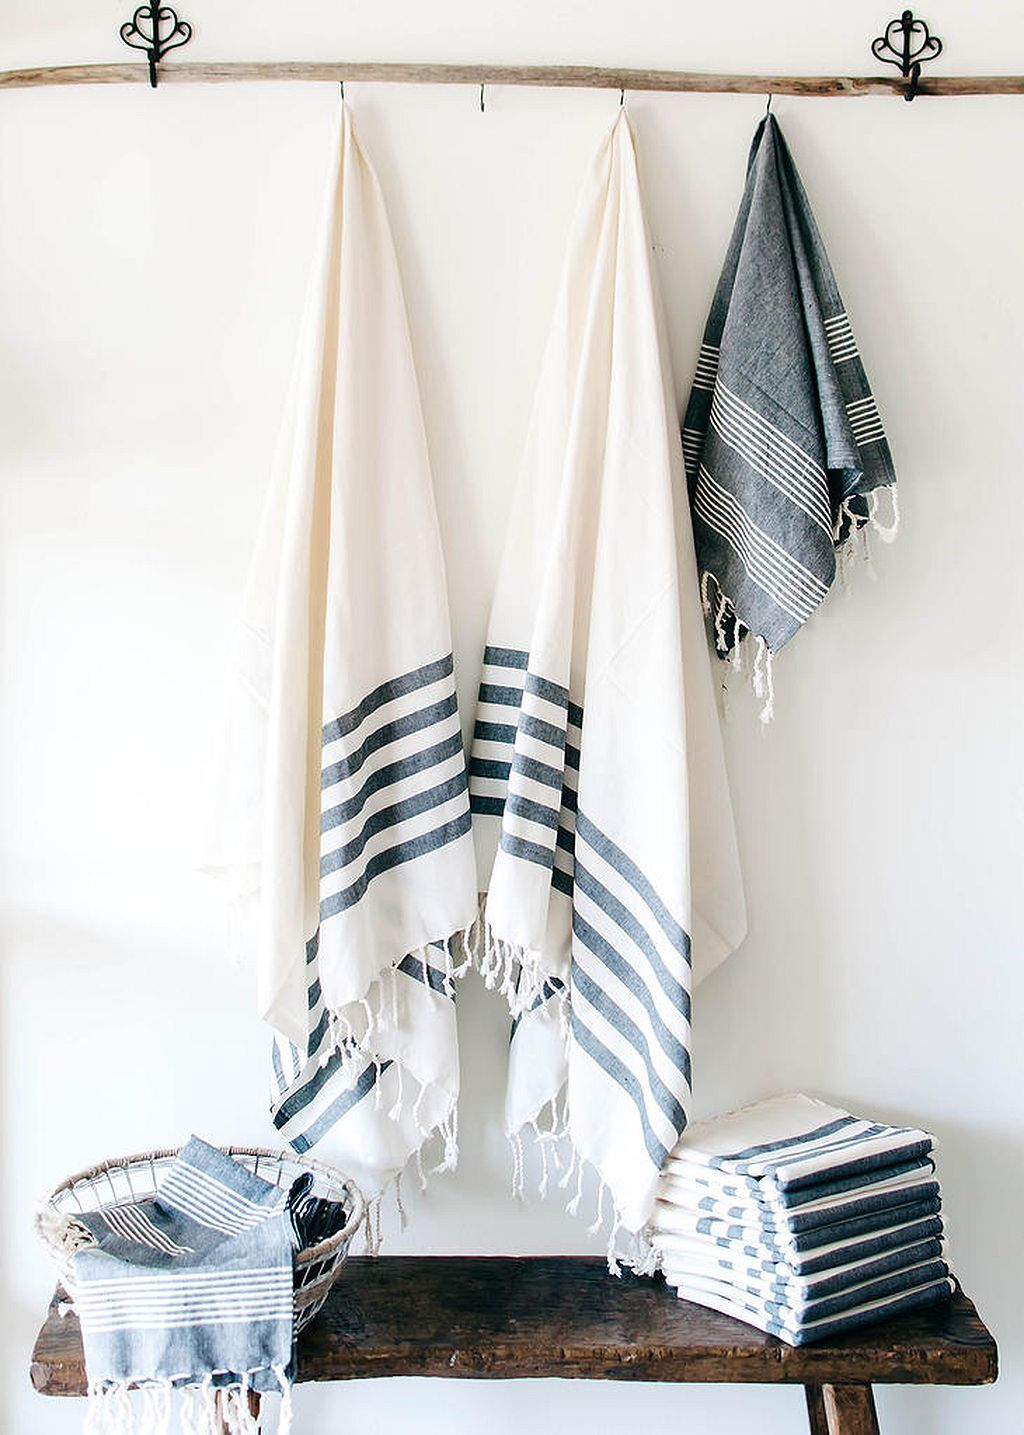 81 Turkish Towels Bathroom Variation You Might Want To Know